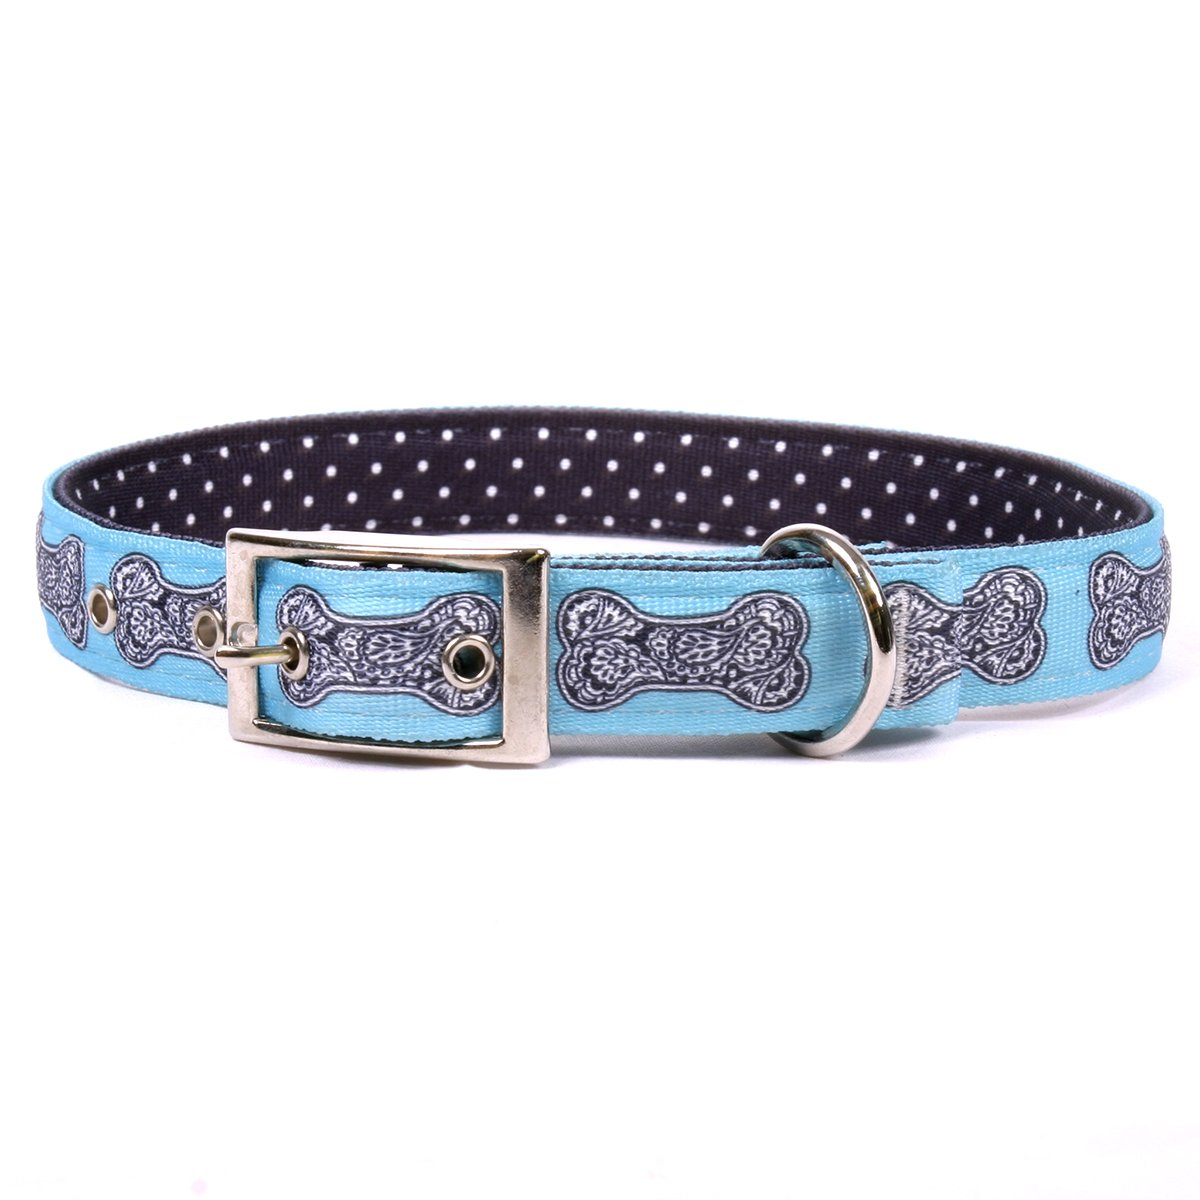 Large 24\ Yellow Dog Design Bella Bone bluee Uptown Dog Collar Fits Neck 20 To 24 , Large 1